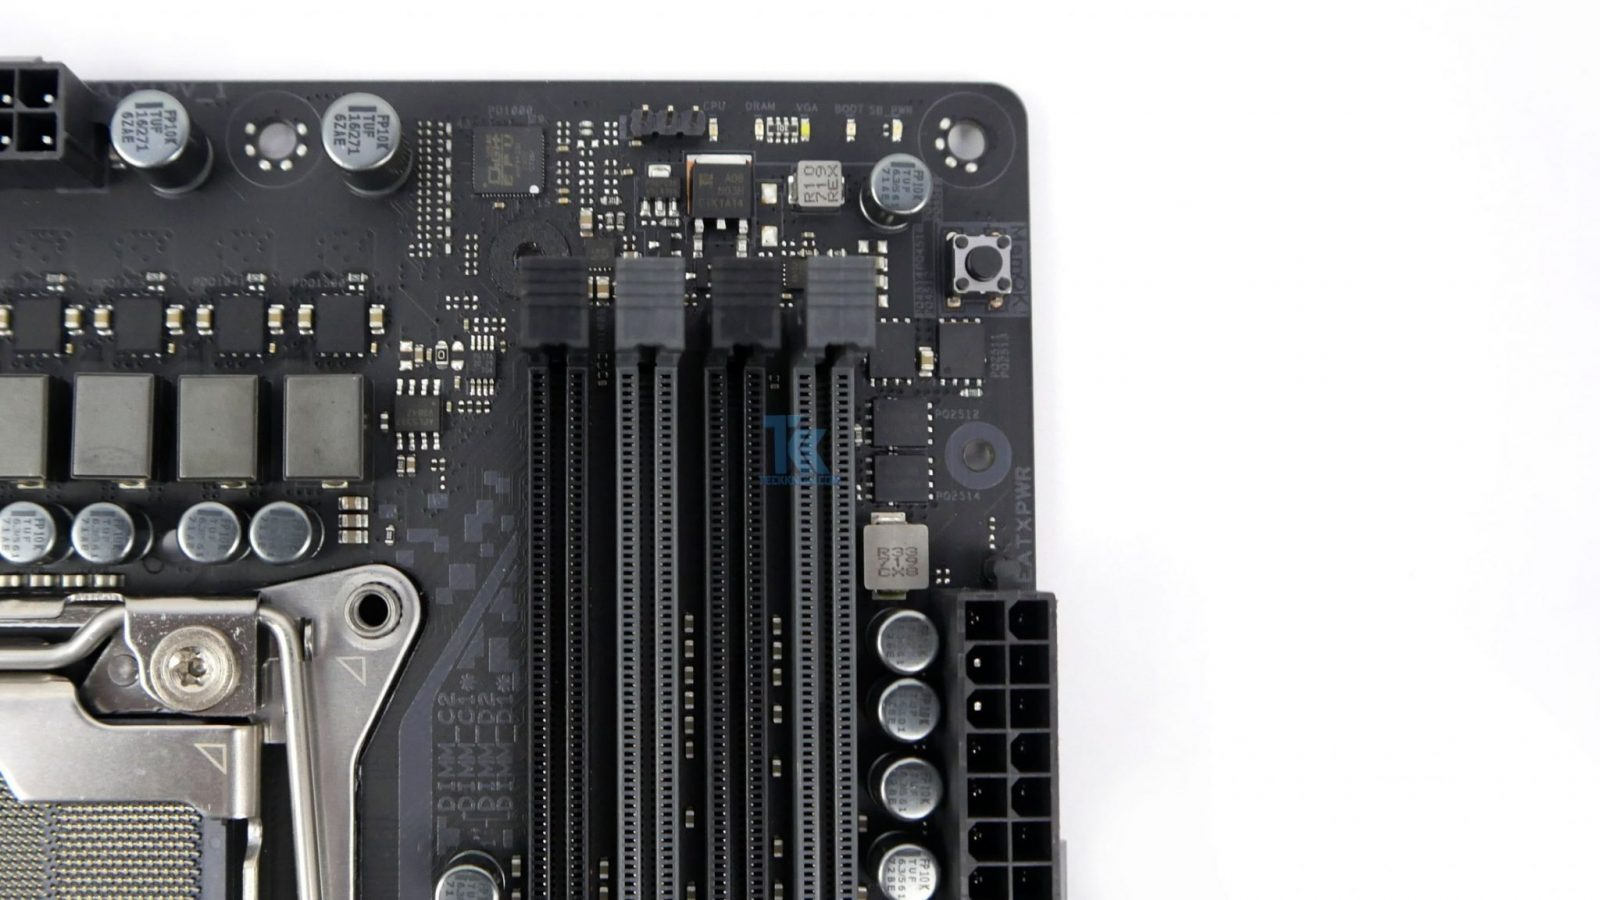 ASUS TUF X299 MARK-1 Motherboard Review